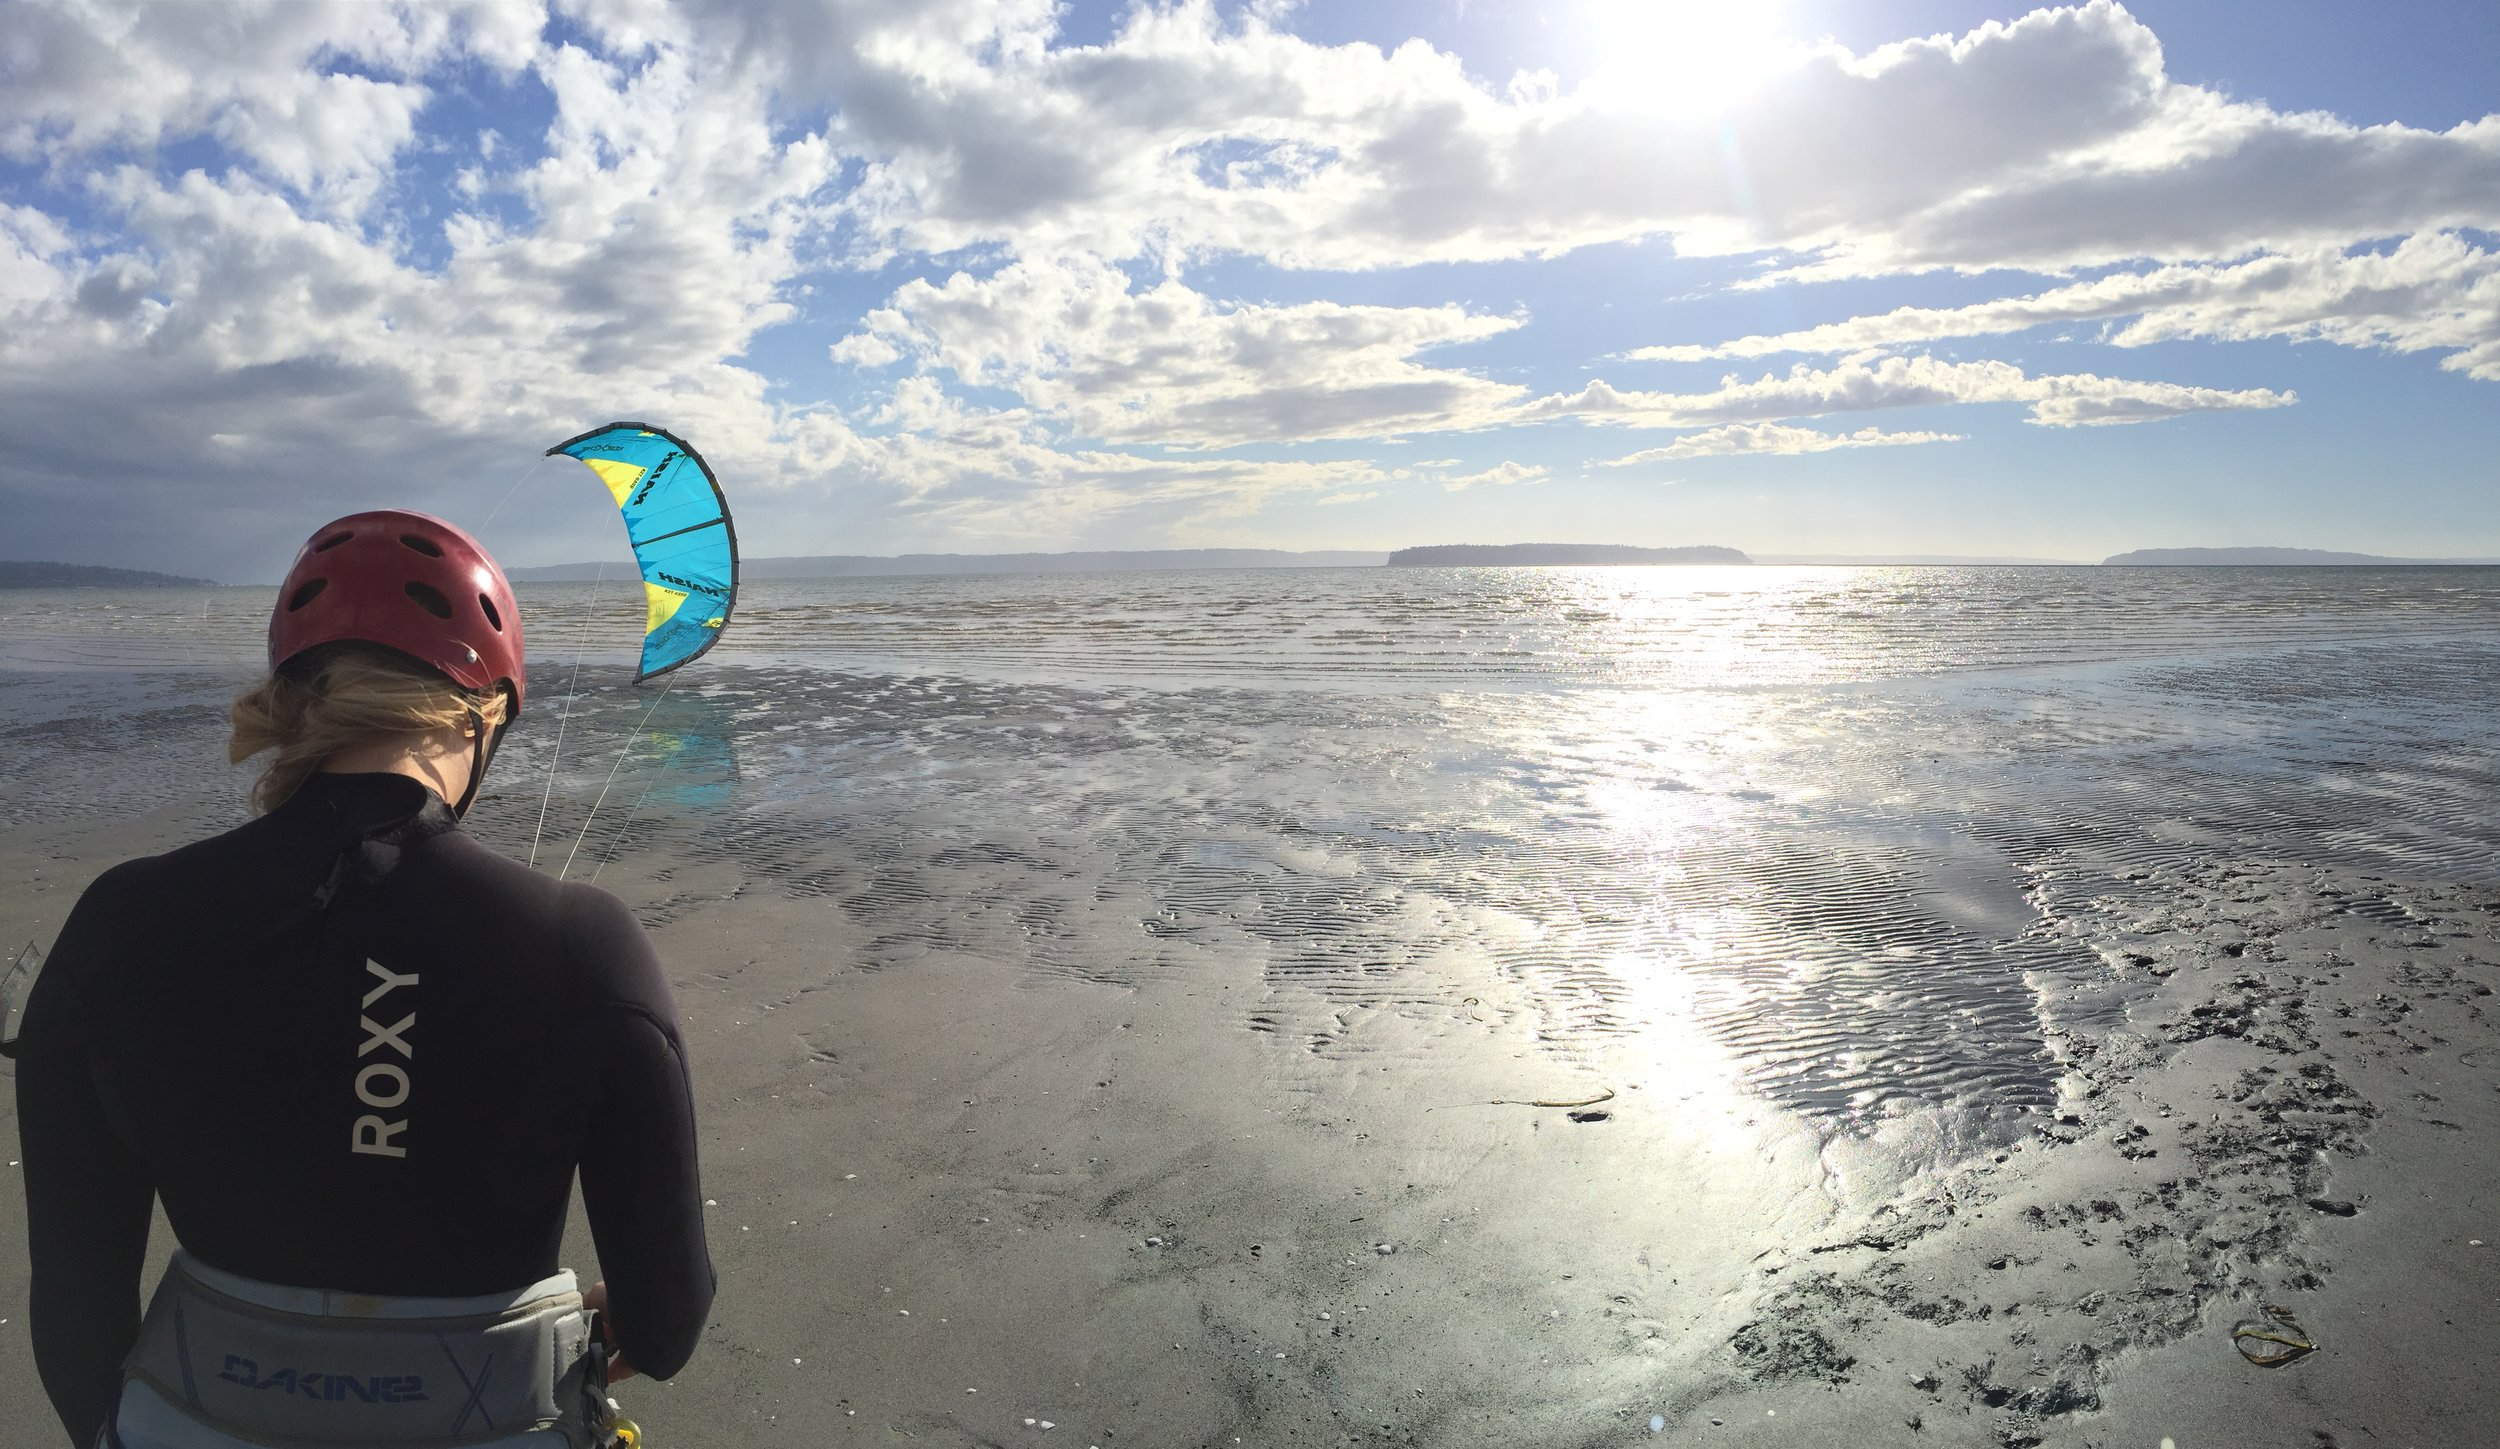 Jetty Island Kiteboarding Second Lesson Shallow Water Training Begins